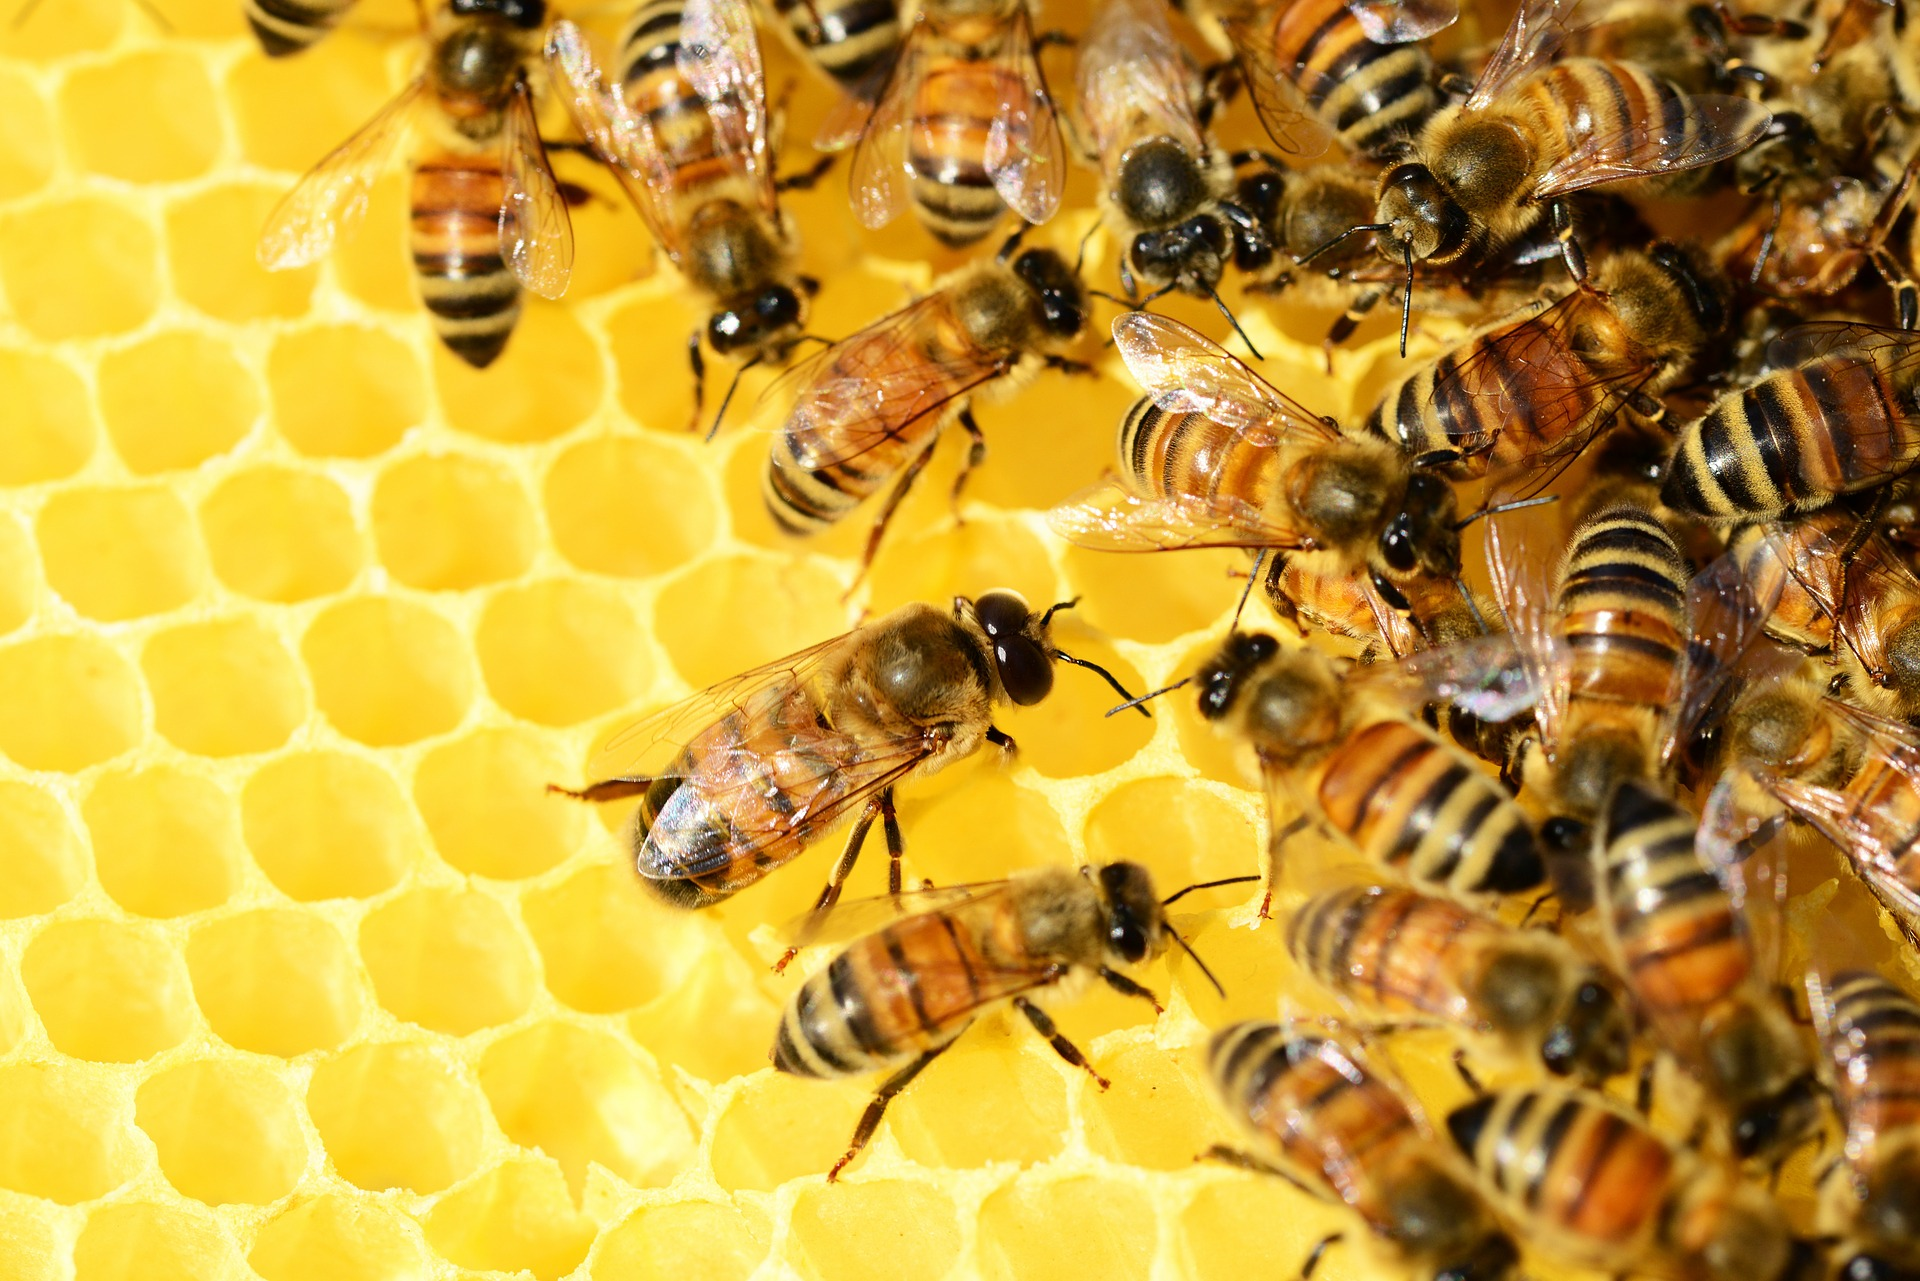 Hive Alive: The Amazing Honey Bee